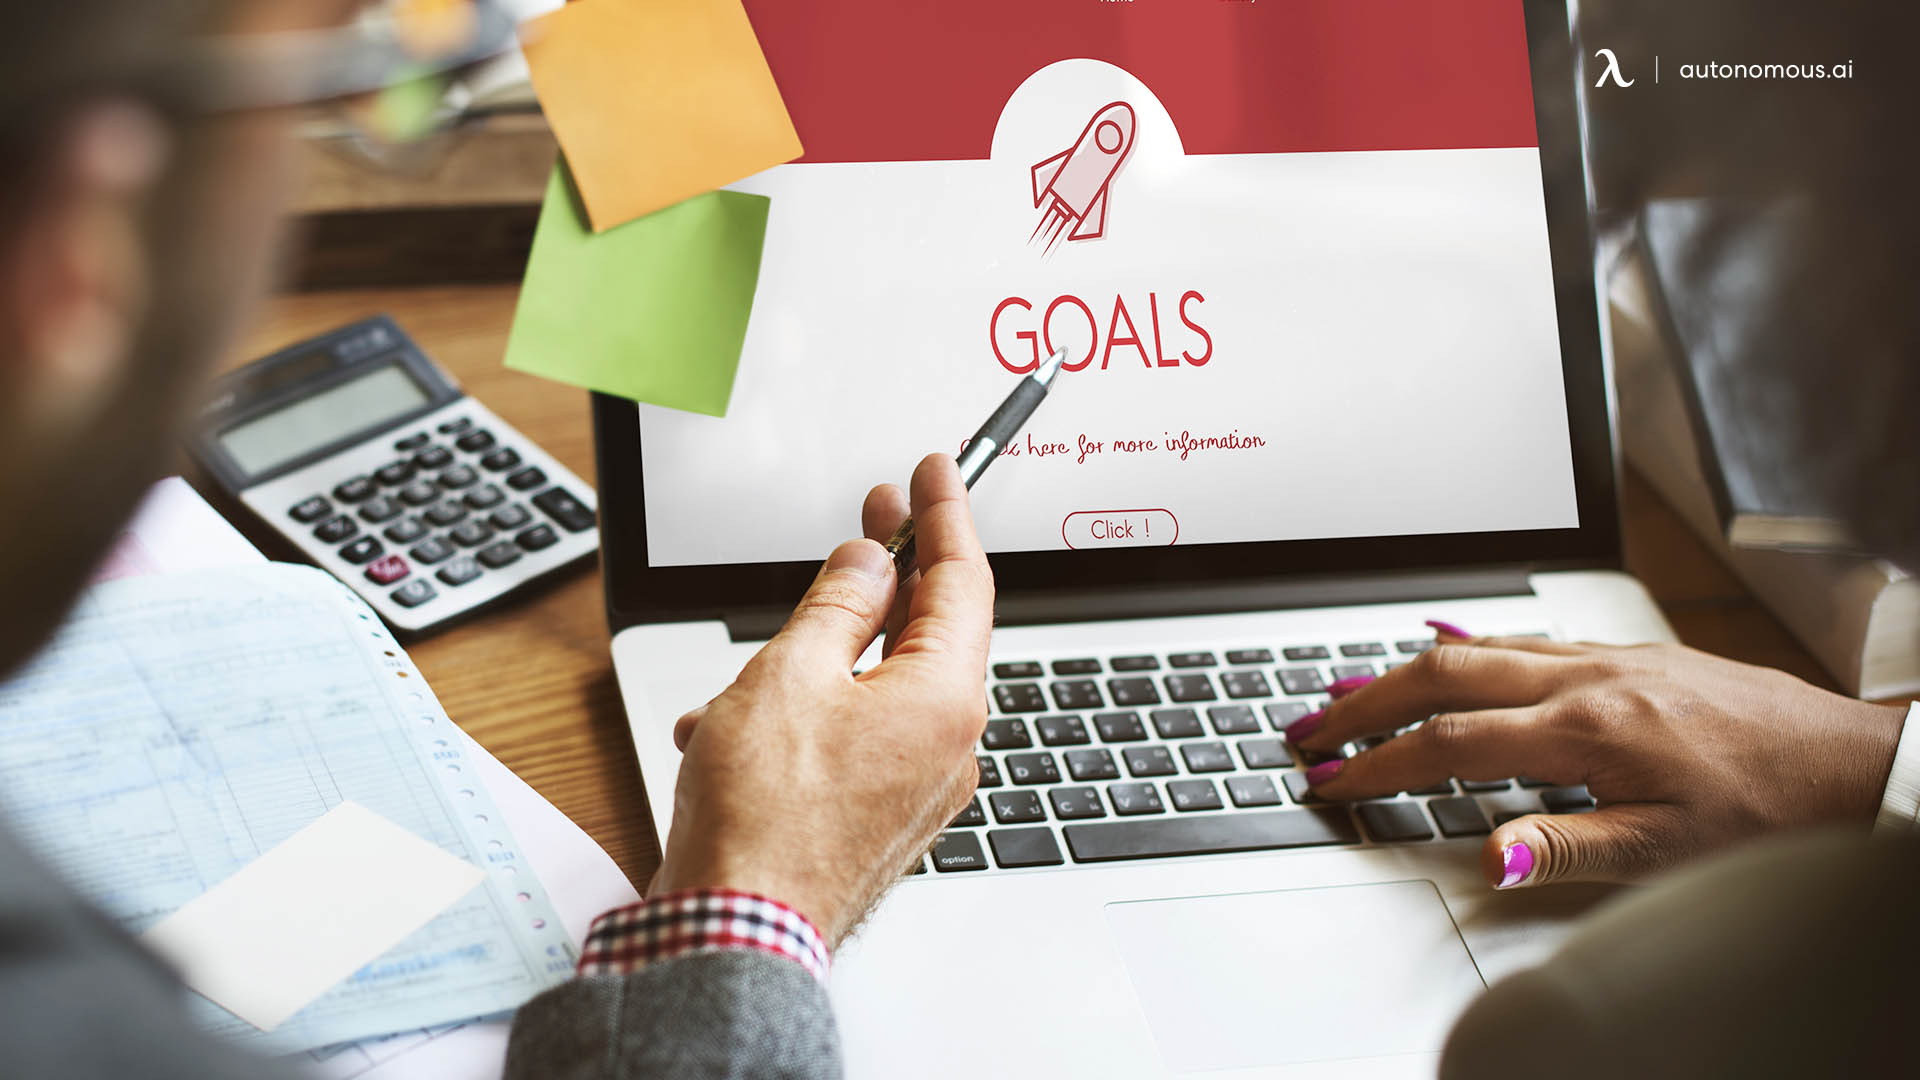 Expectations of the Workplace (Goal Setting)